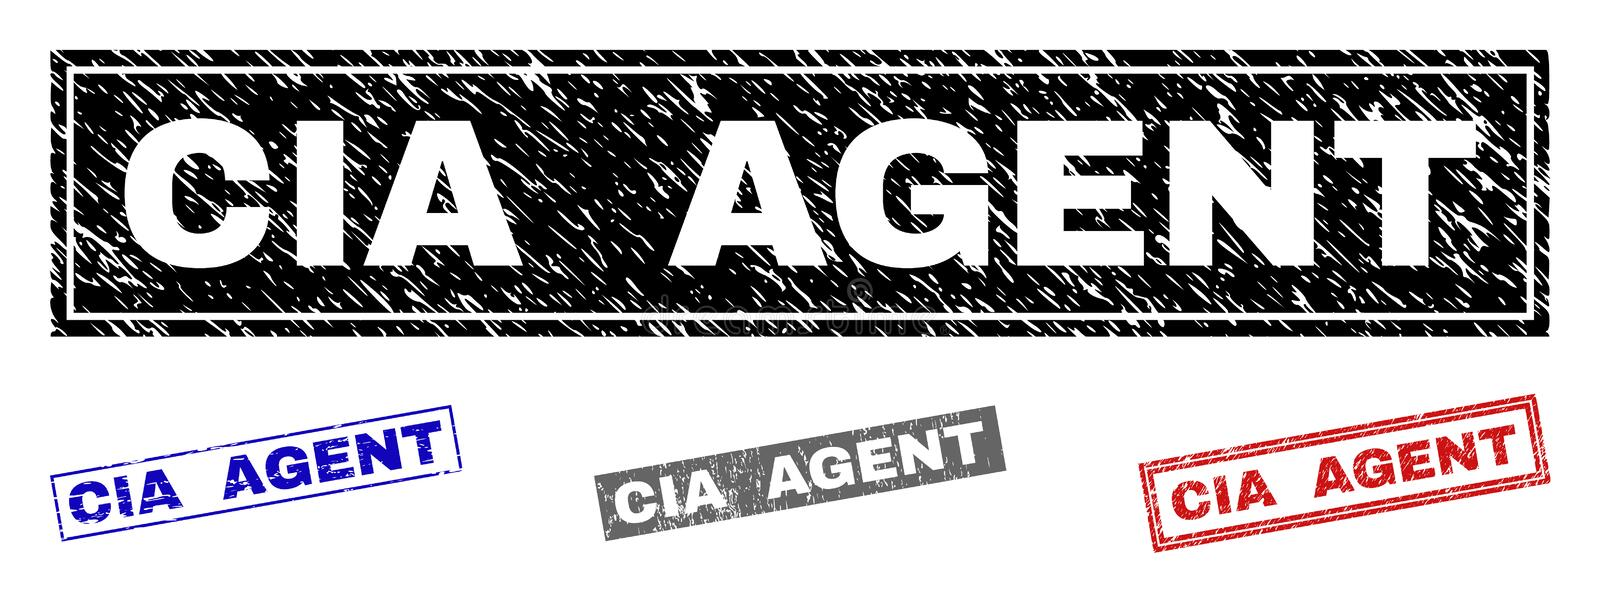 Grunge CIA AGENT Textured Rectangle Watermarks. Grunge CIA AGENT rectangle stamp seals isolated on a white background. Rectangular seals with grunge texture in royalty free illustration